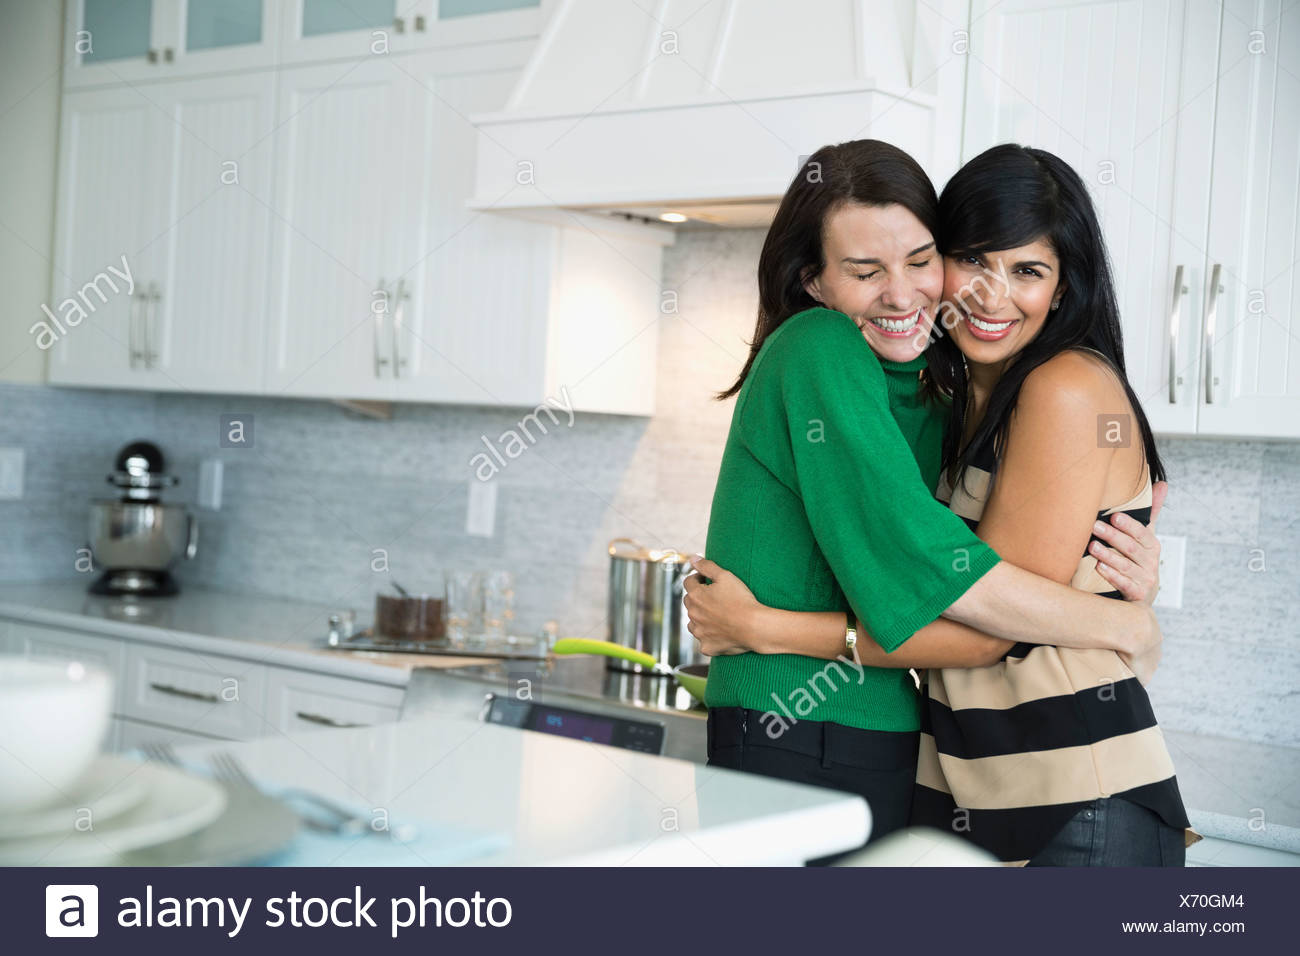 Portrait of happy mature woman embracing female friend in domestic kitchen - Stock Image